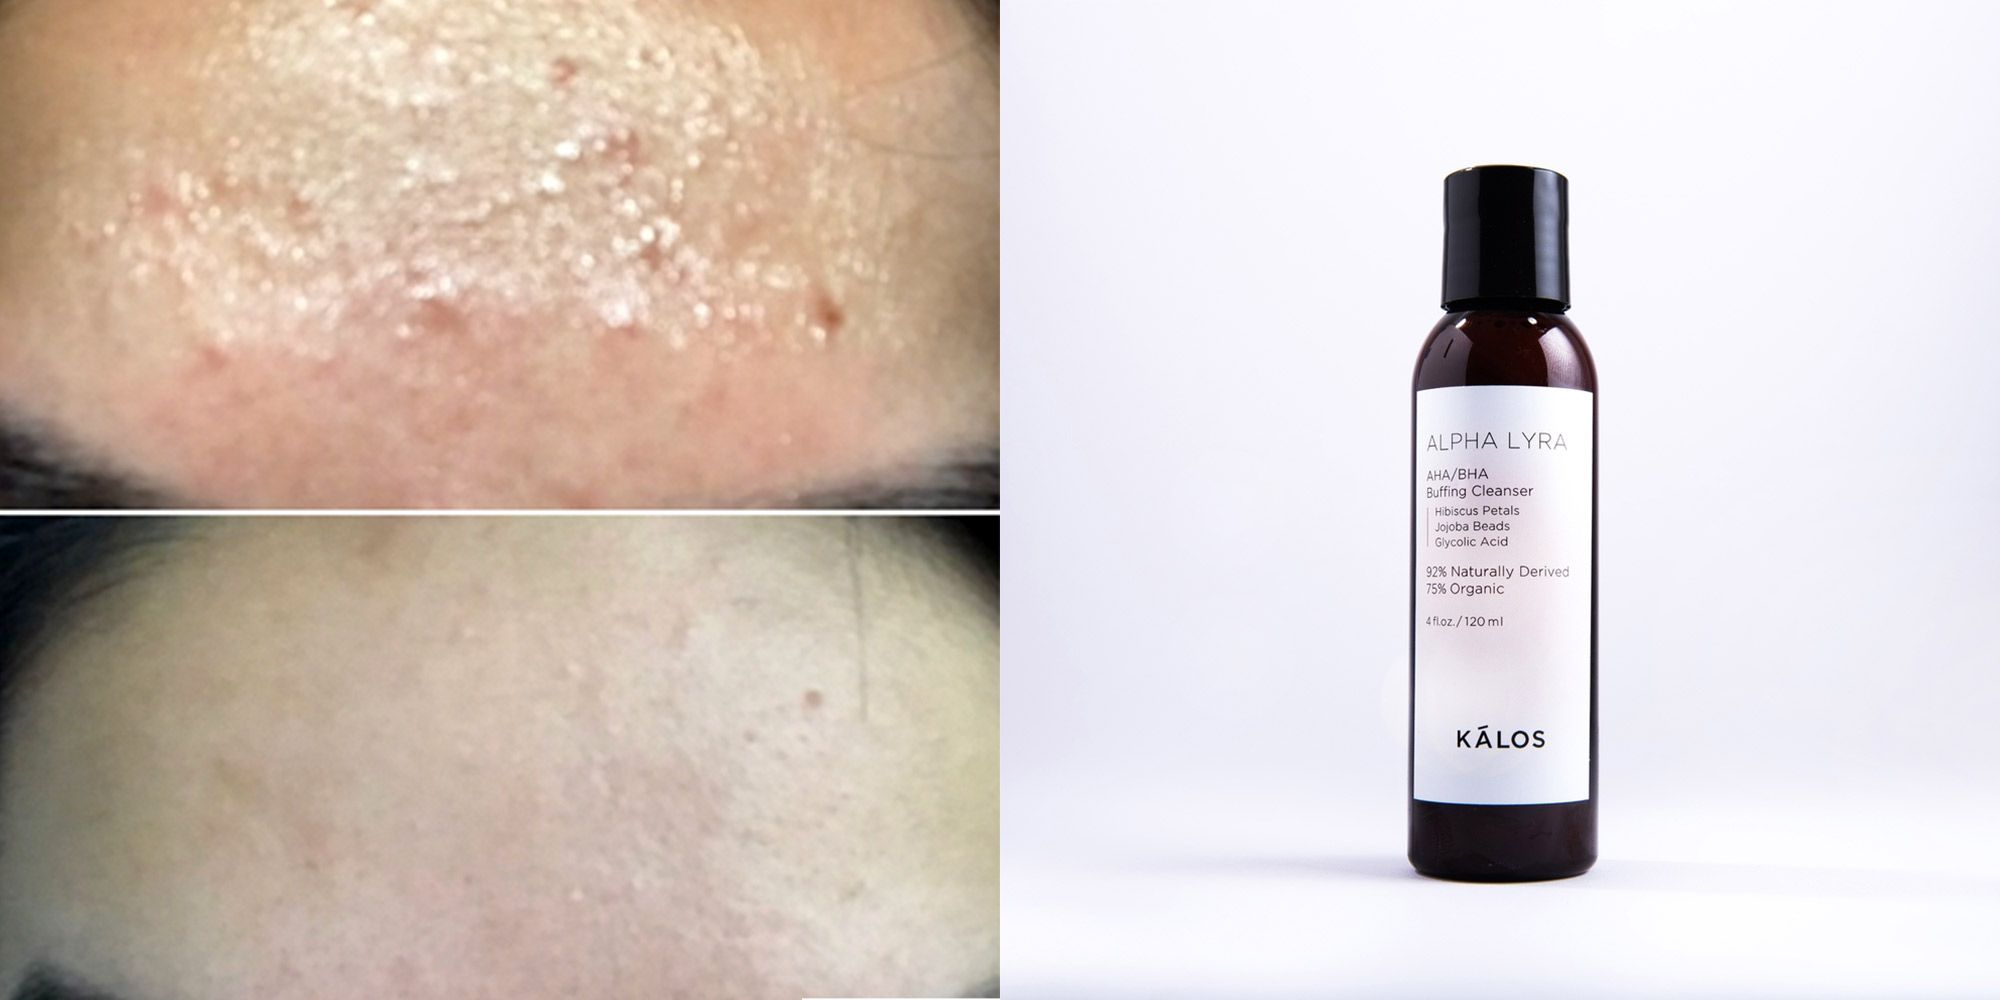 How To Get Rid Of Forehead Acne According To Reddit Ance Treatments